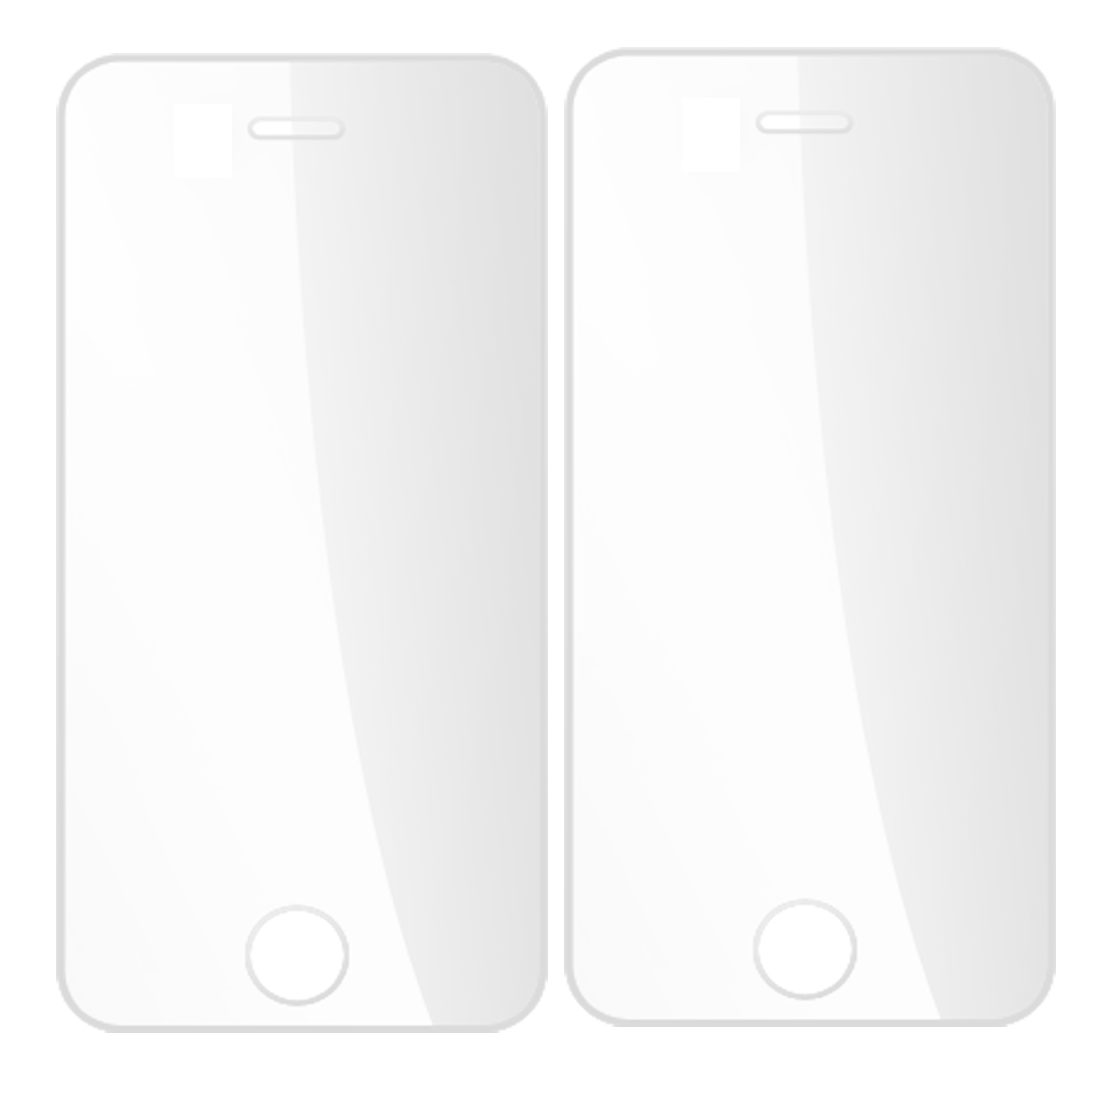 2 Pcs Clear Anti Dust LCD Screen Protectors for Apple iPhone 4 4G 4GS